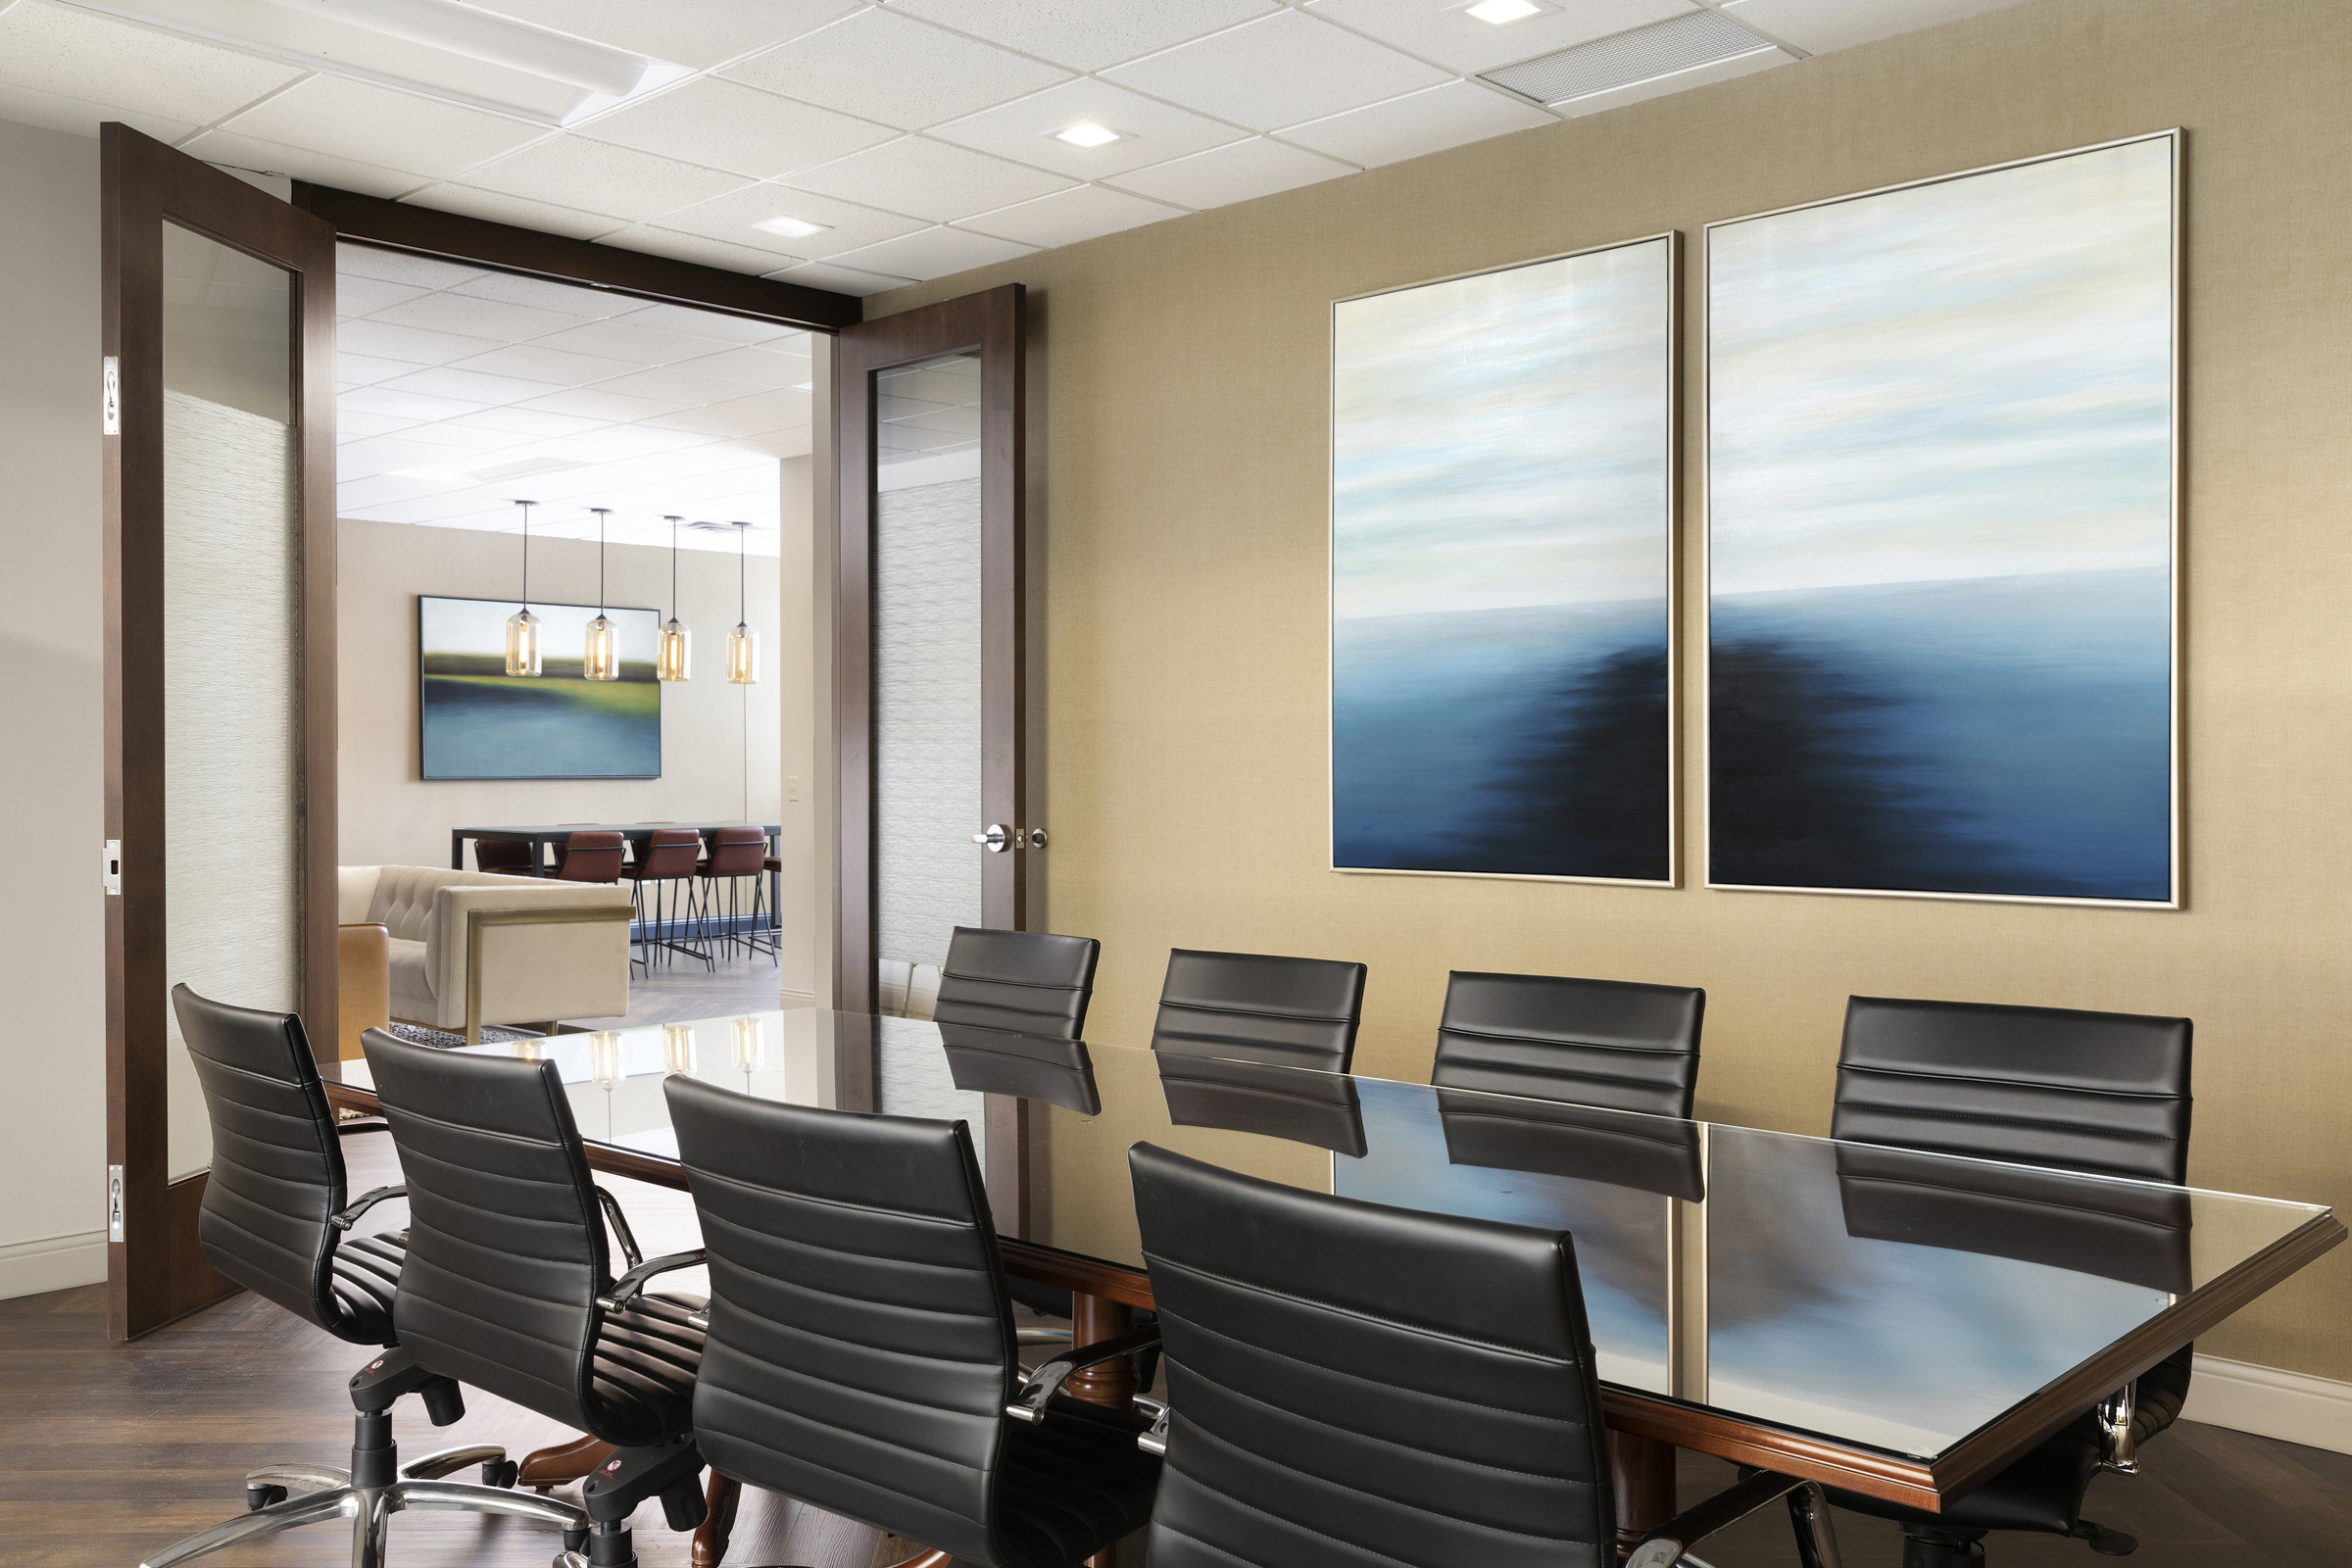 Conference Room Design | Vela Creative Interior Design | St. Paul, MN